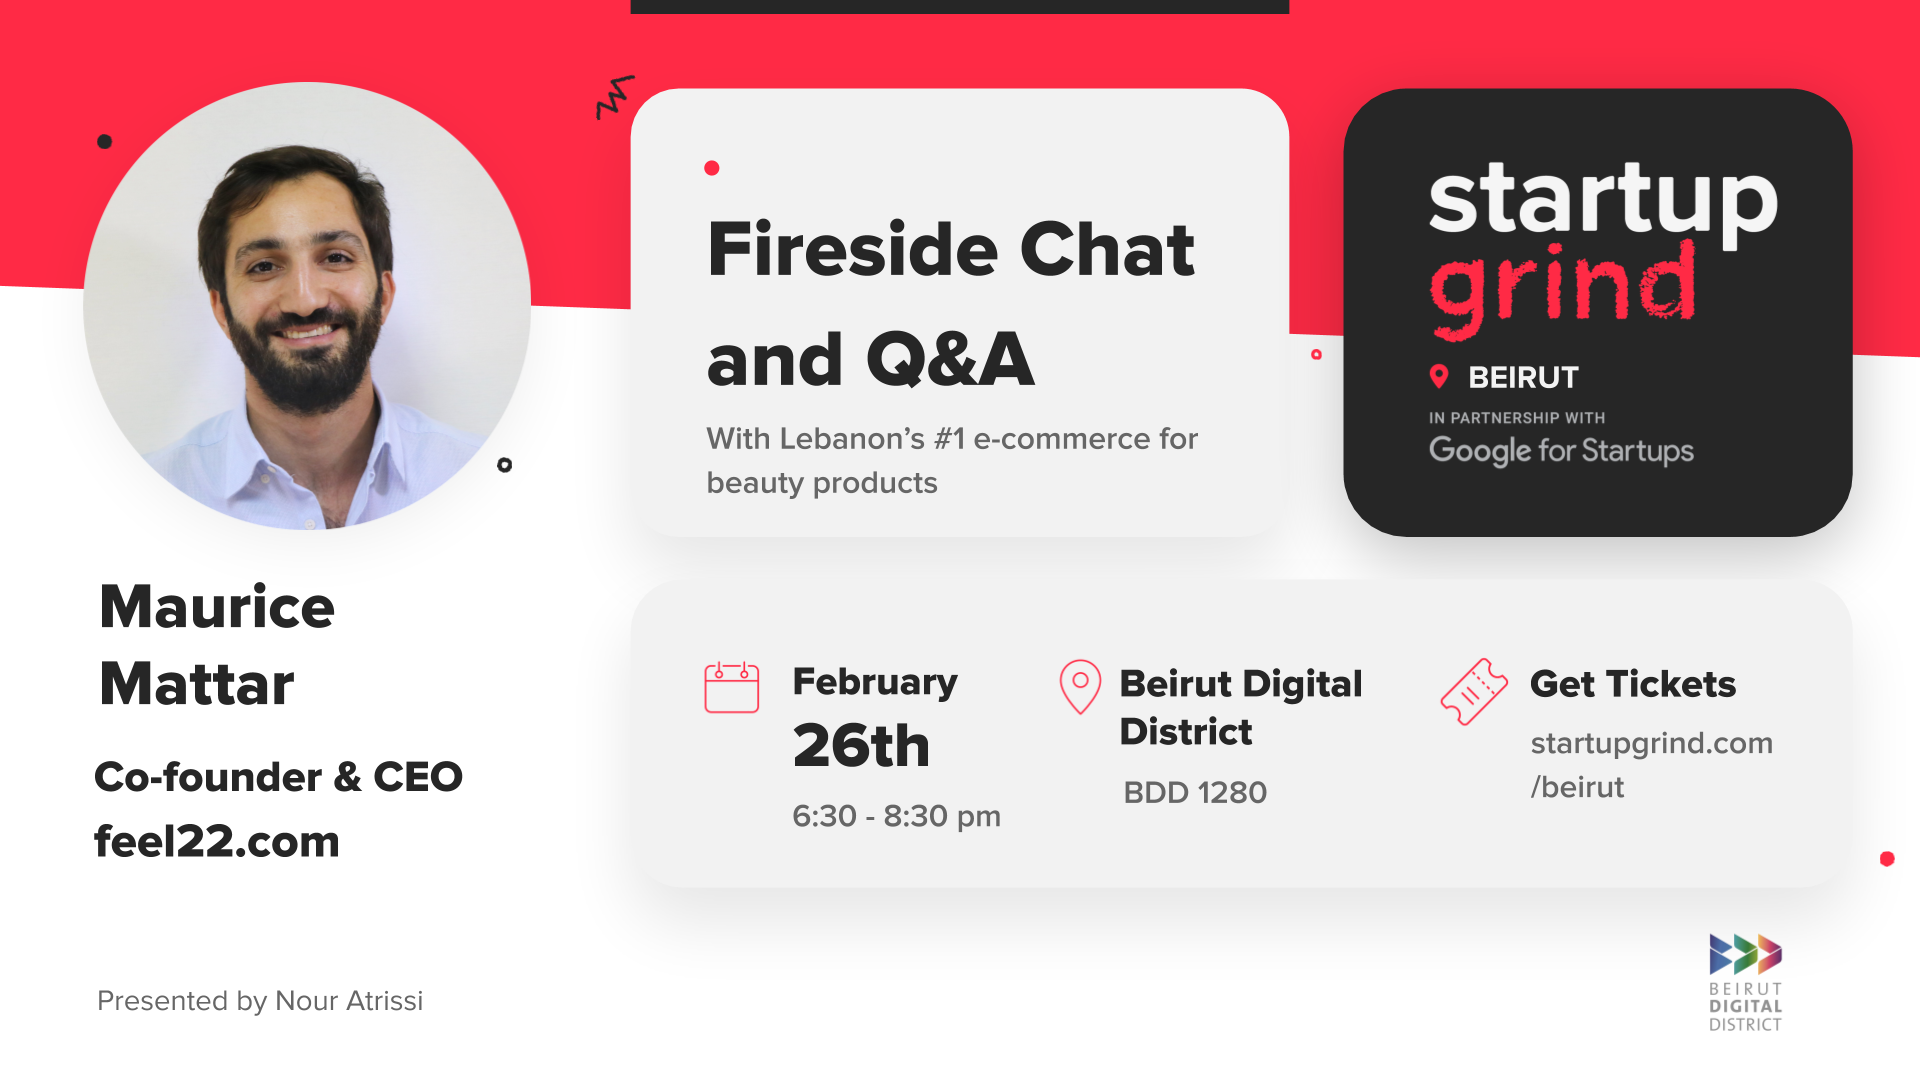 Startup Grind Beirut hosts Maurice Mattar (co-founder & CEO of feel22.com)